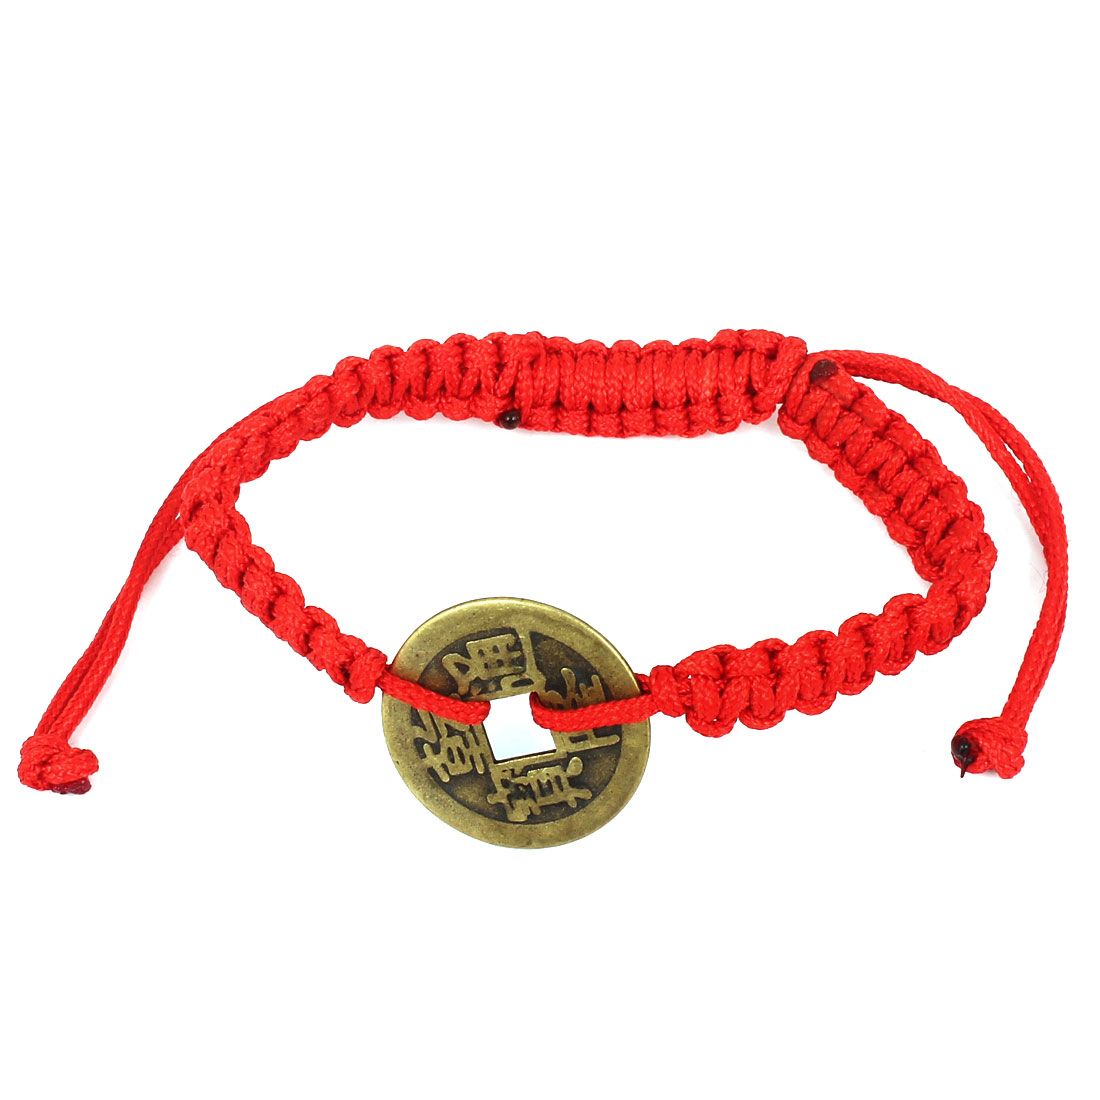 Red Handmade Adjustable Knotted Braided Rope Copper Coin Decor Wrist Bracelet